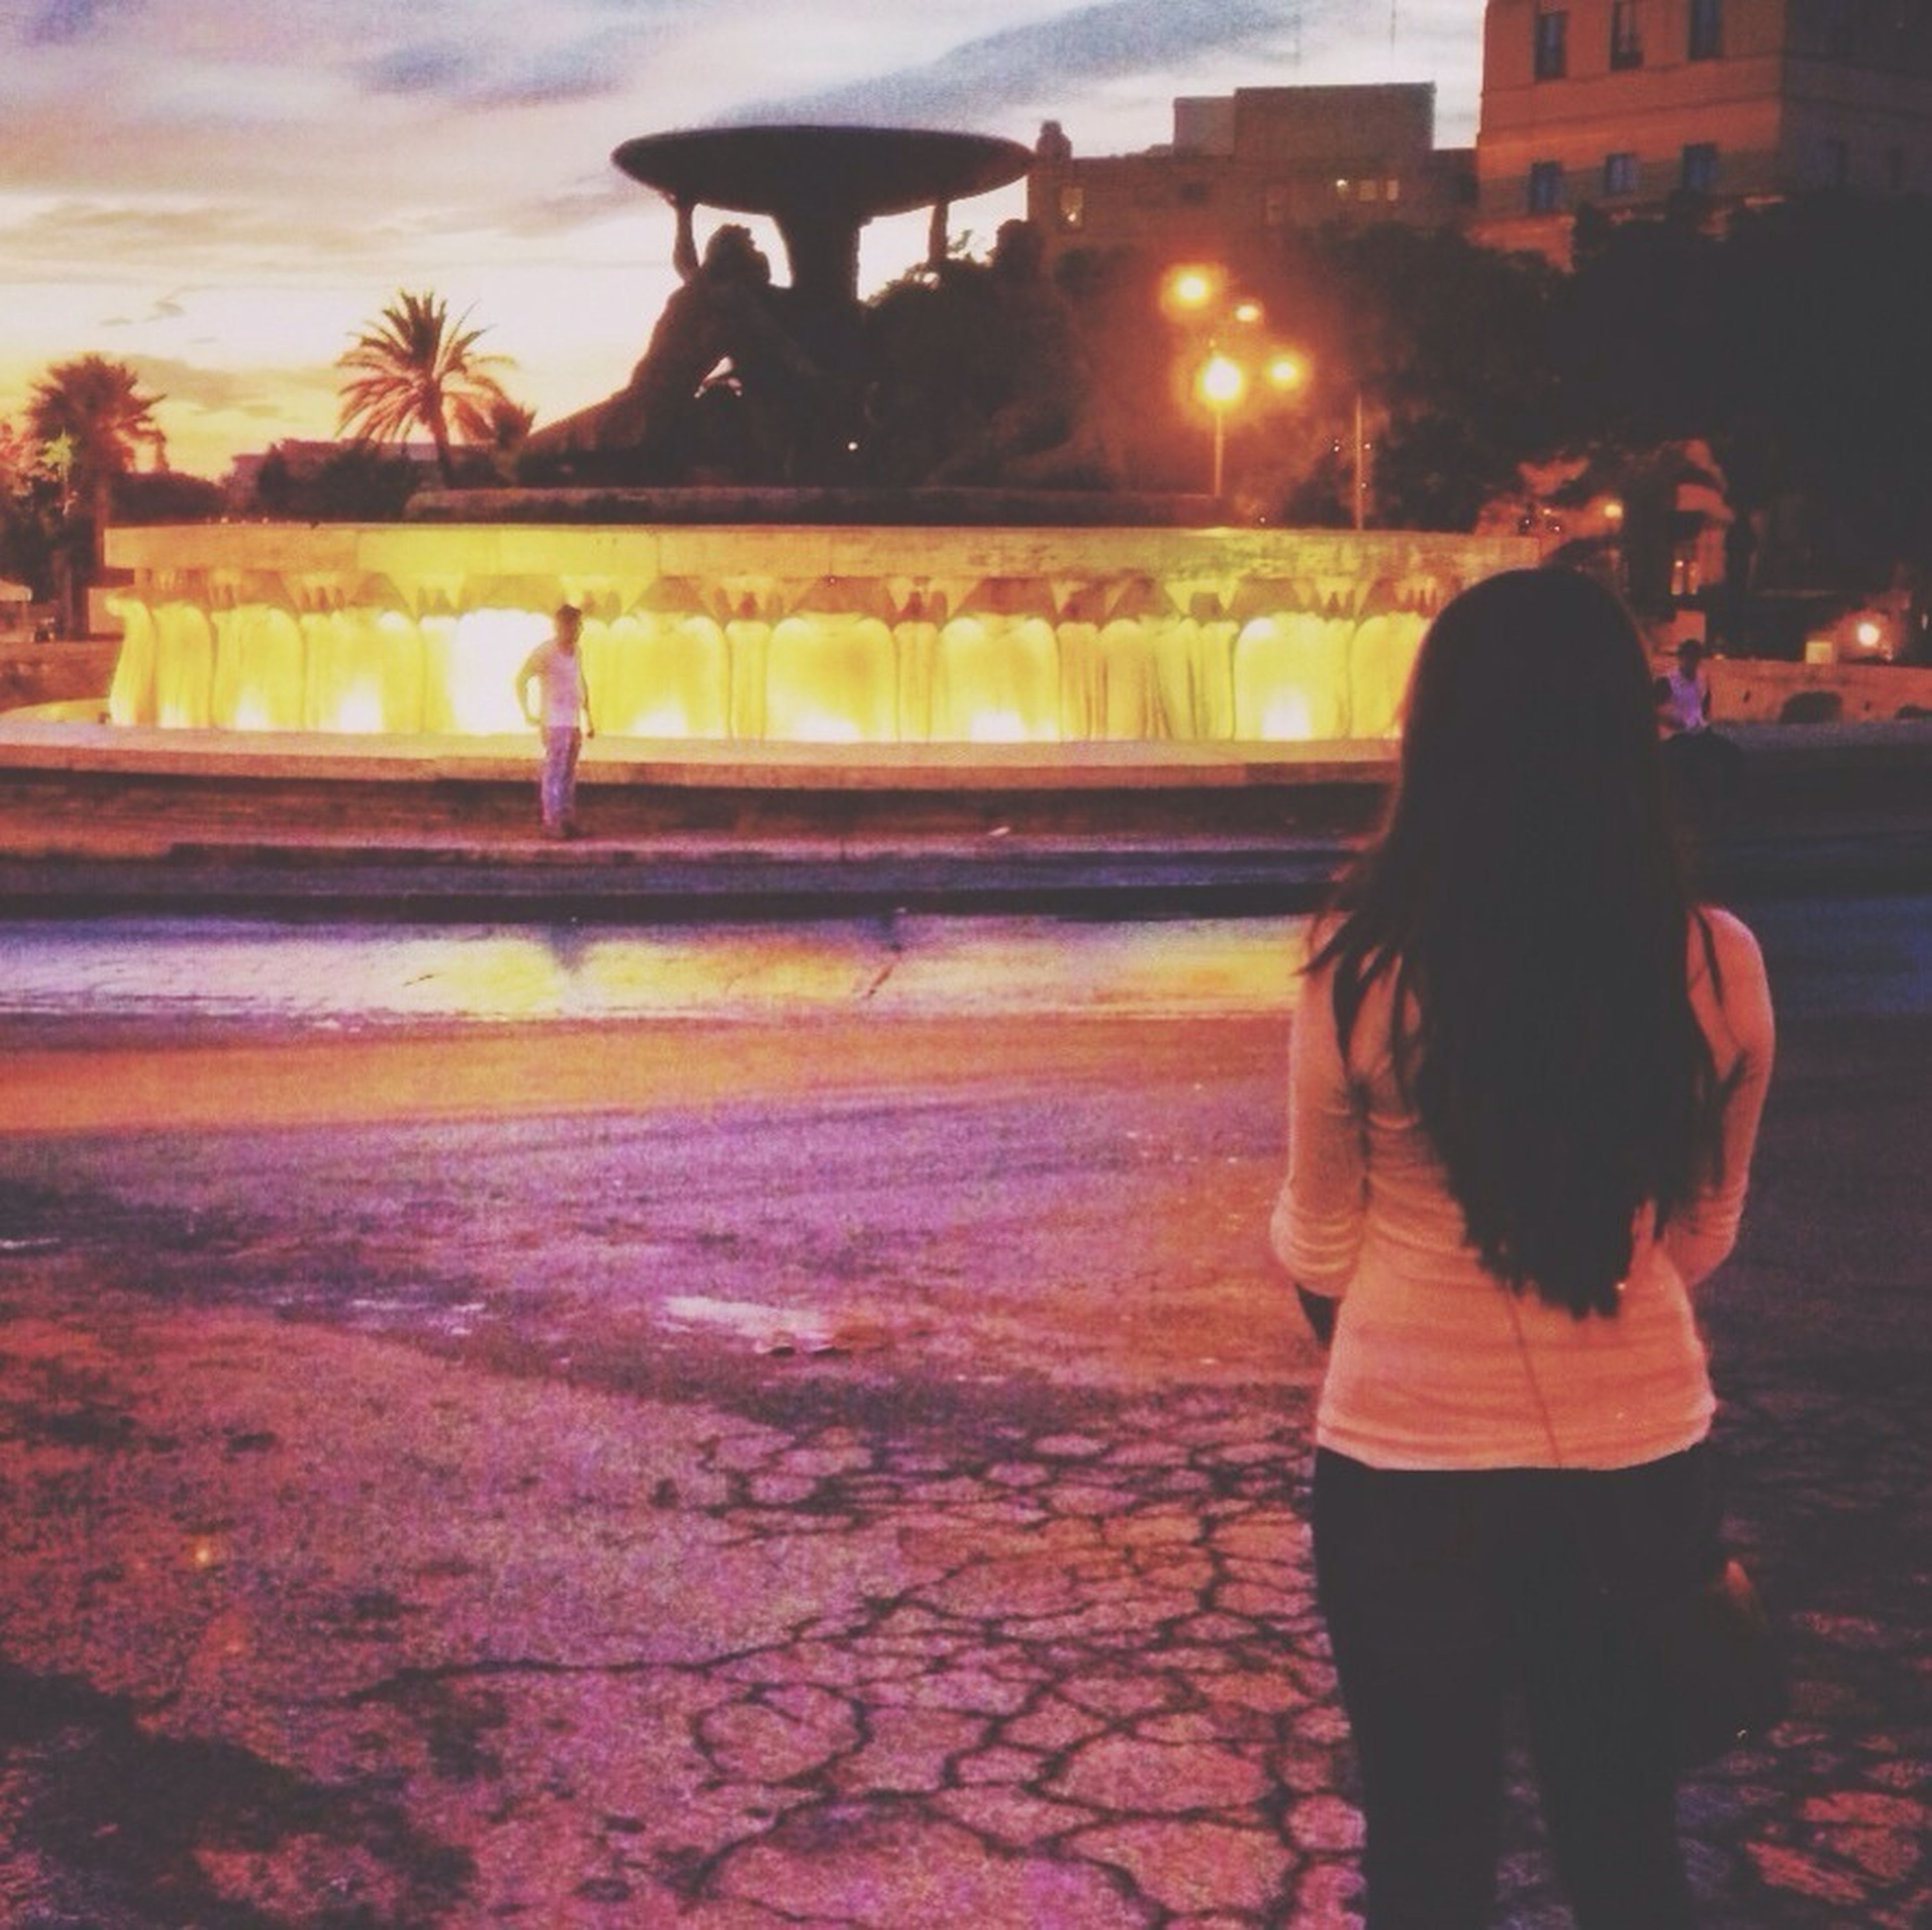 lifestyles, leisure activity, building exterior, full length, standing, casual clothing, person, rear view, architecture, built structure, illuminated, night, girls, water, sunset, walking, togetherness